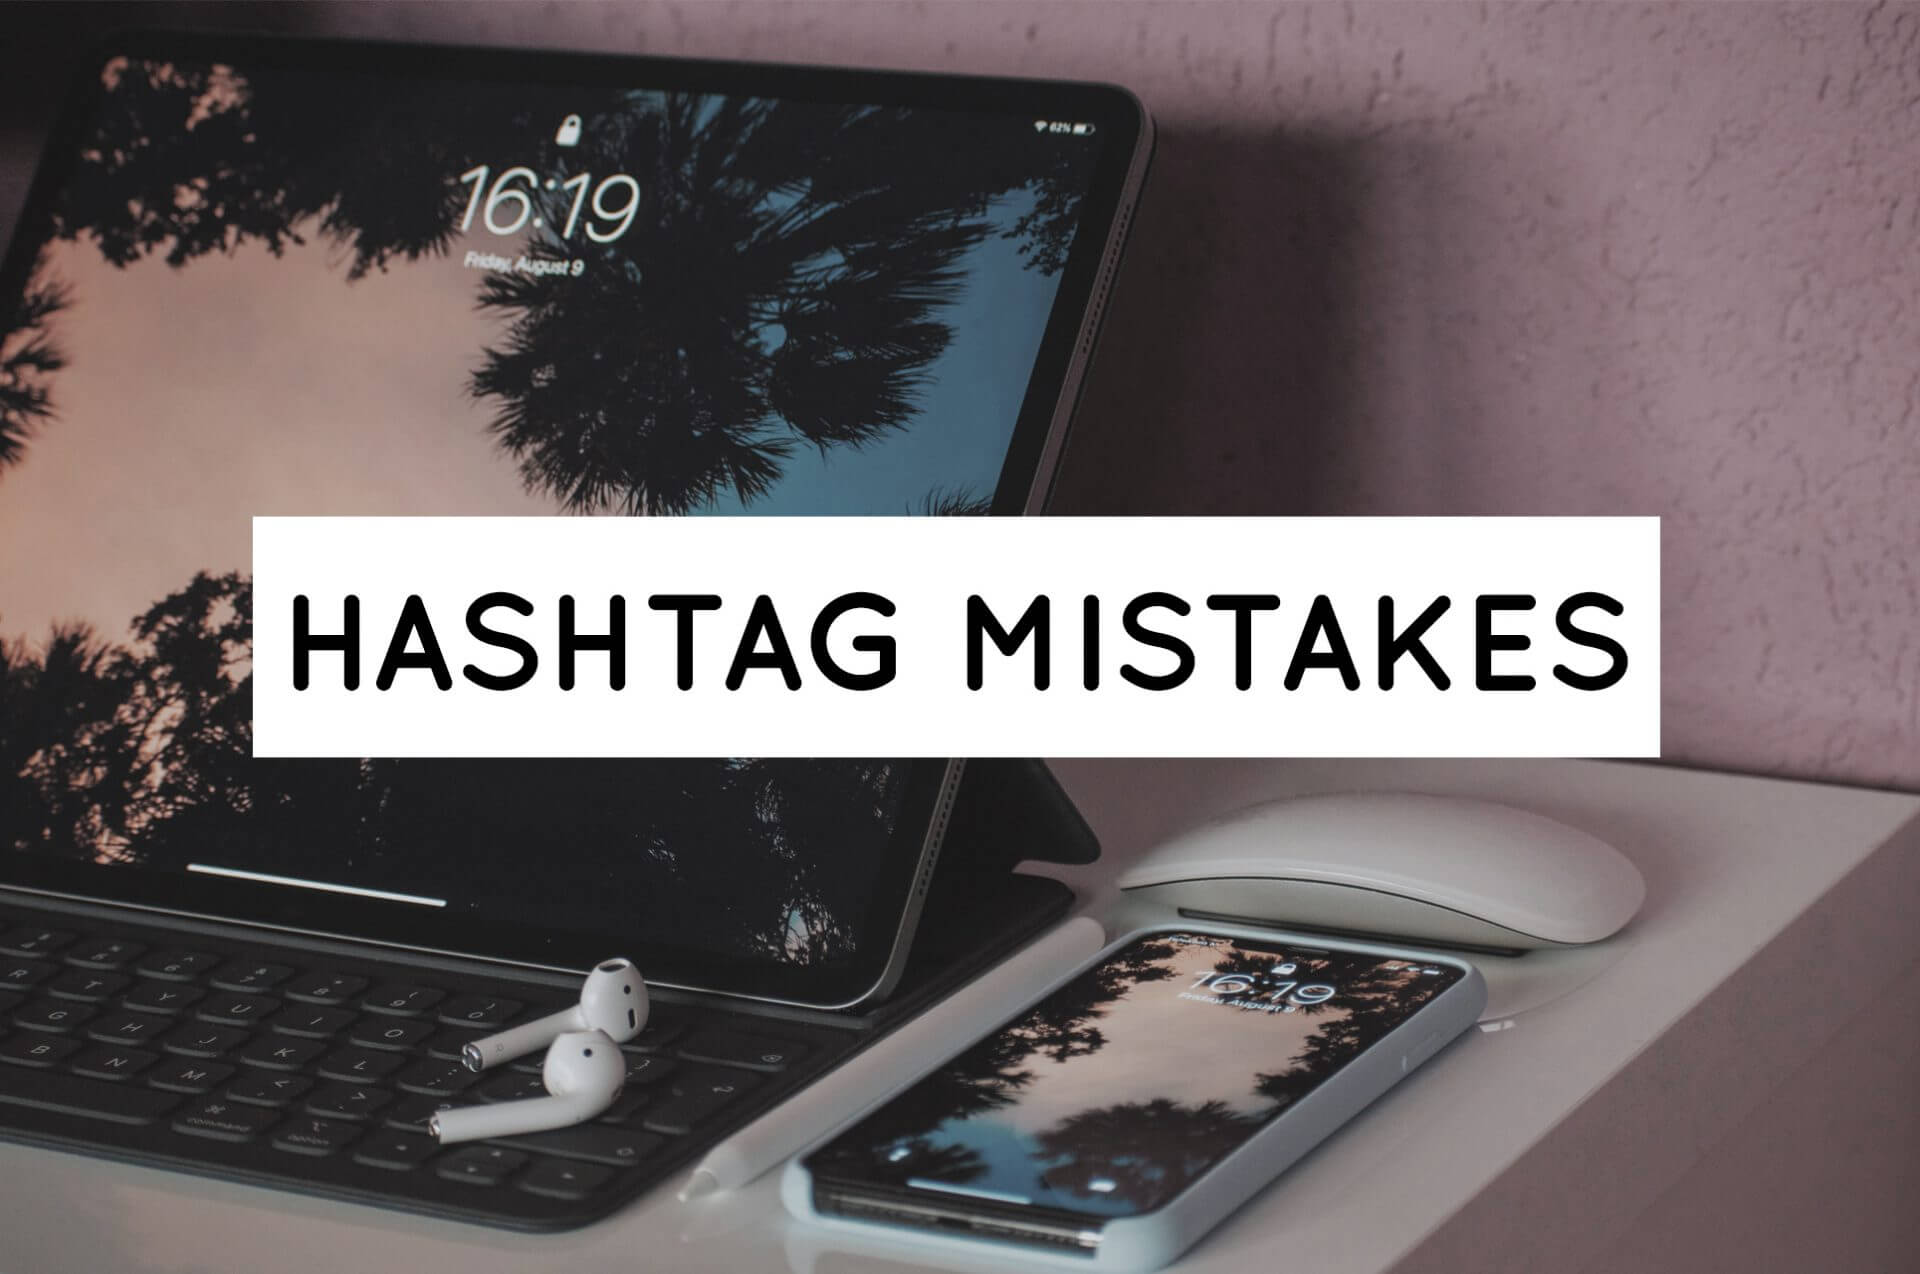 Header about Hashtag mistakes